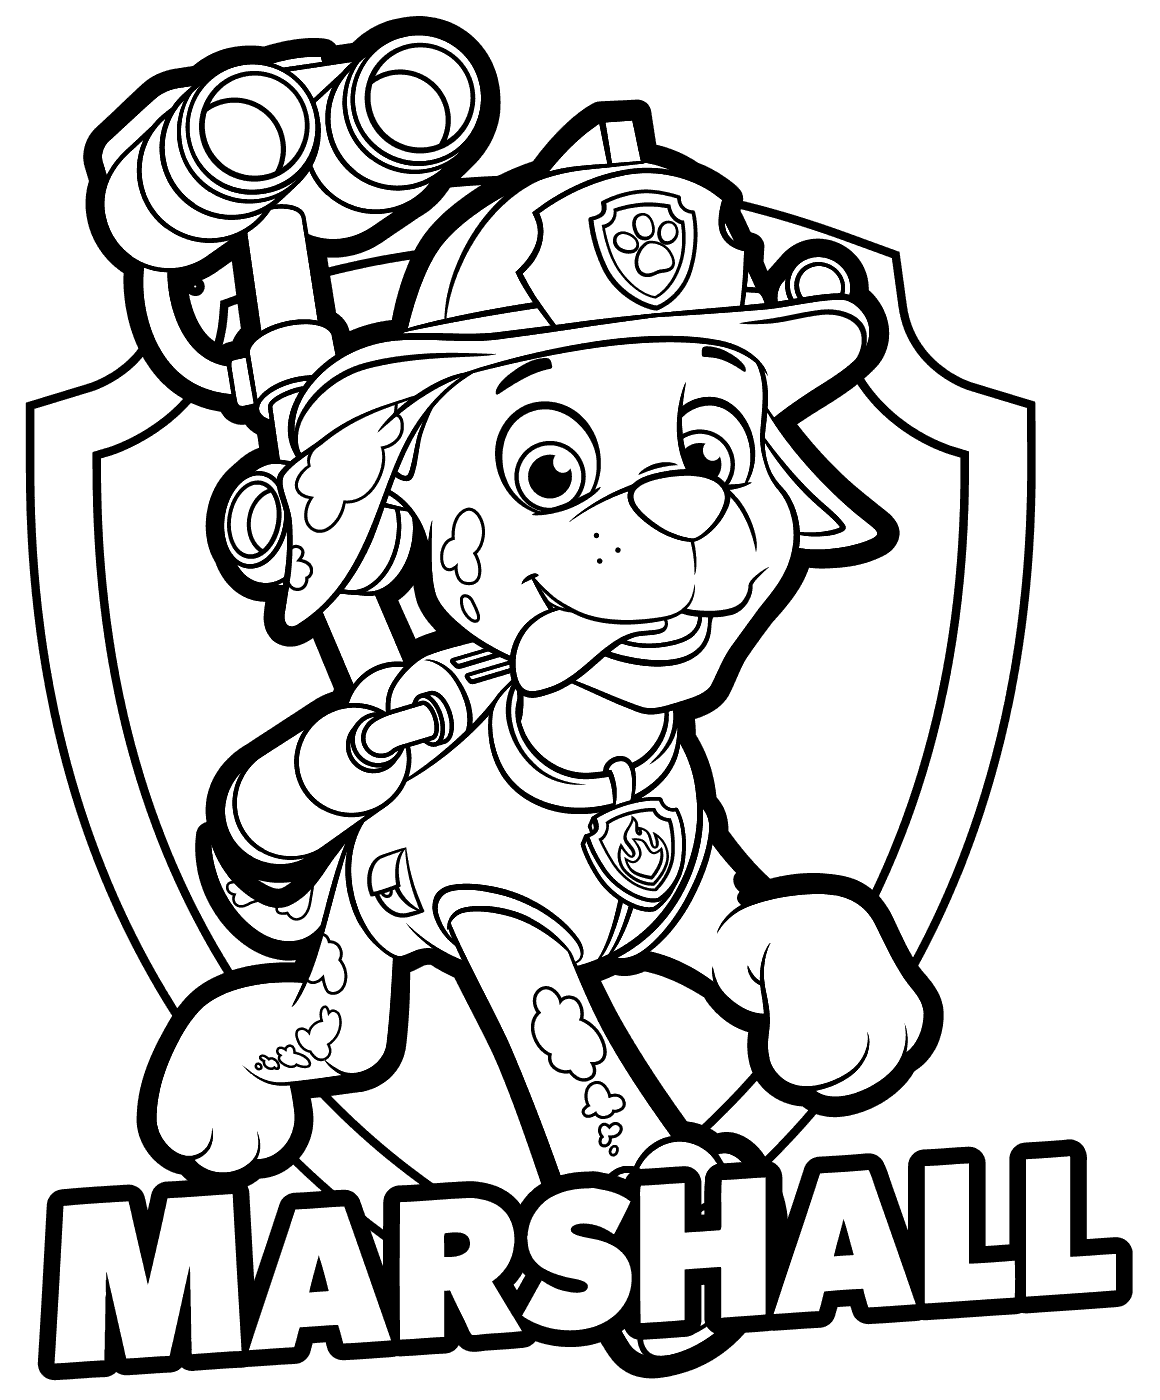 paw patrol free coloring pages printable paw patrol merry christmas coloring page tsgoscom patrol printable paw pages free coloring